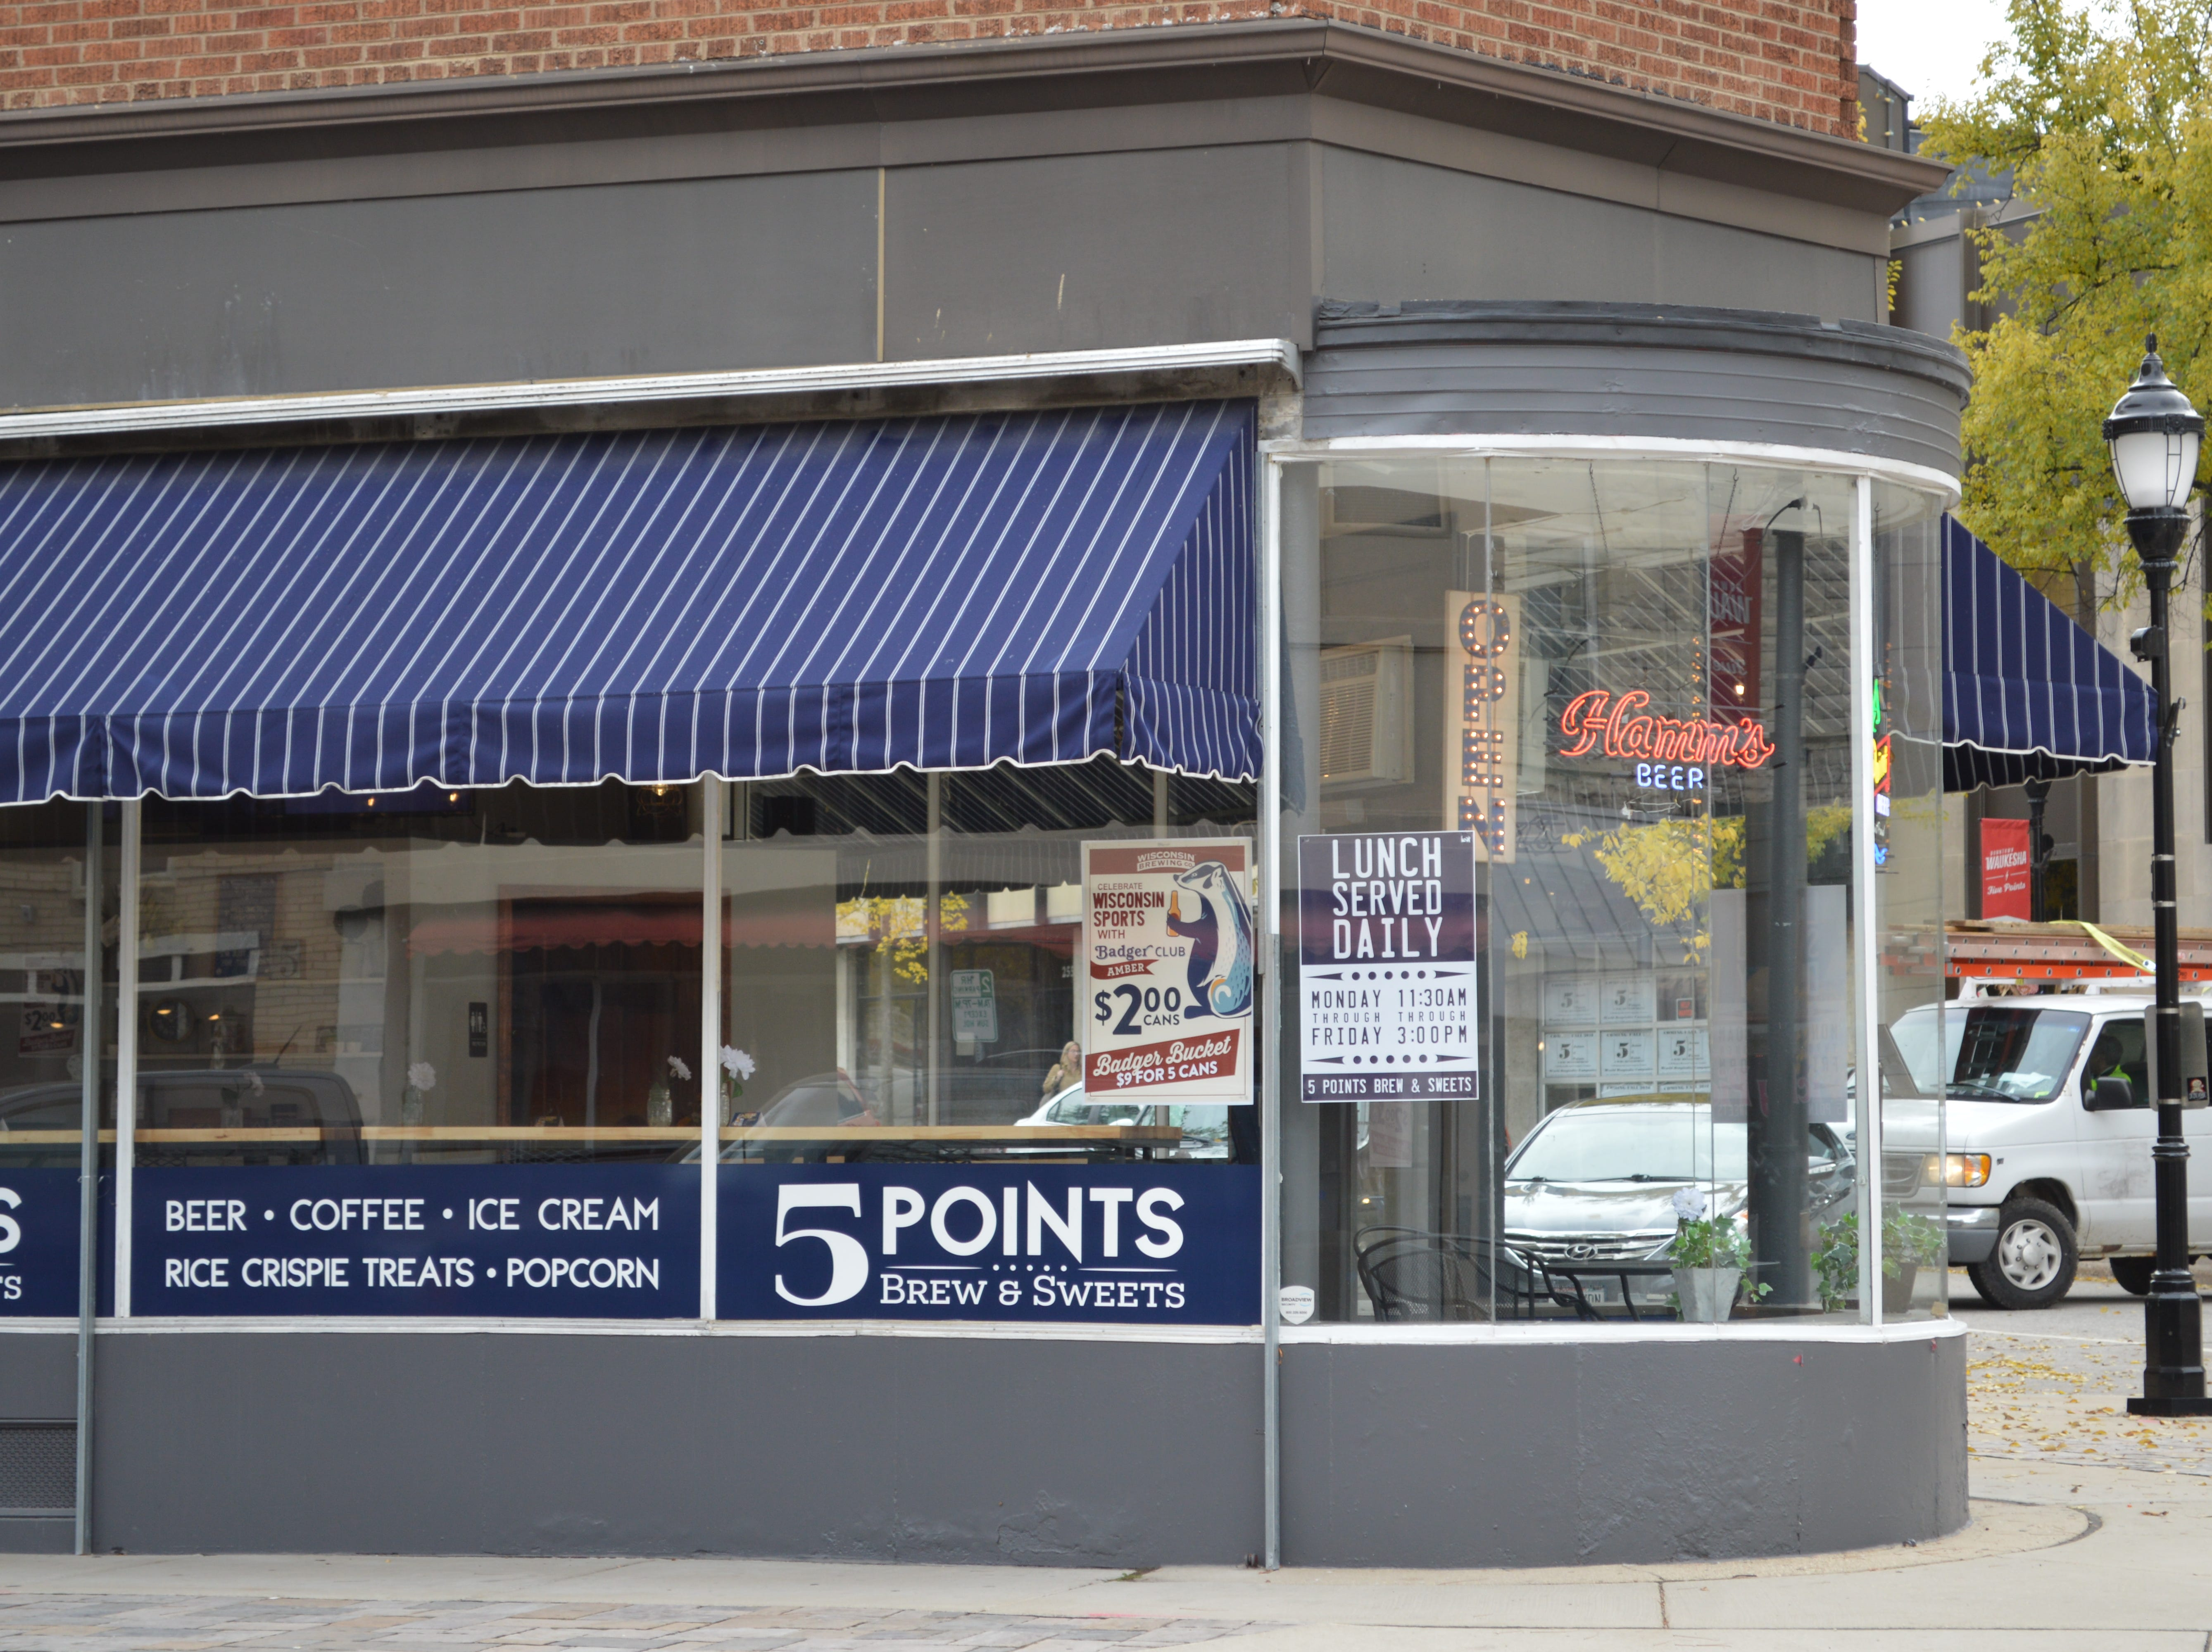 5Points Brew and Sweets is located at 279 W. Main St., Waukesha.